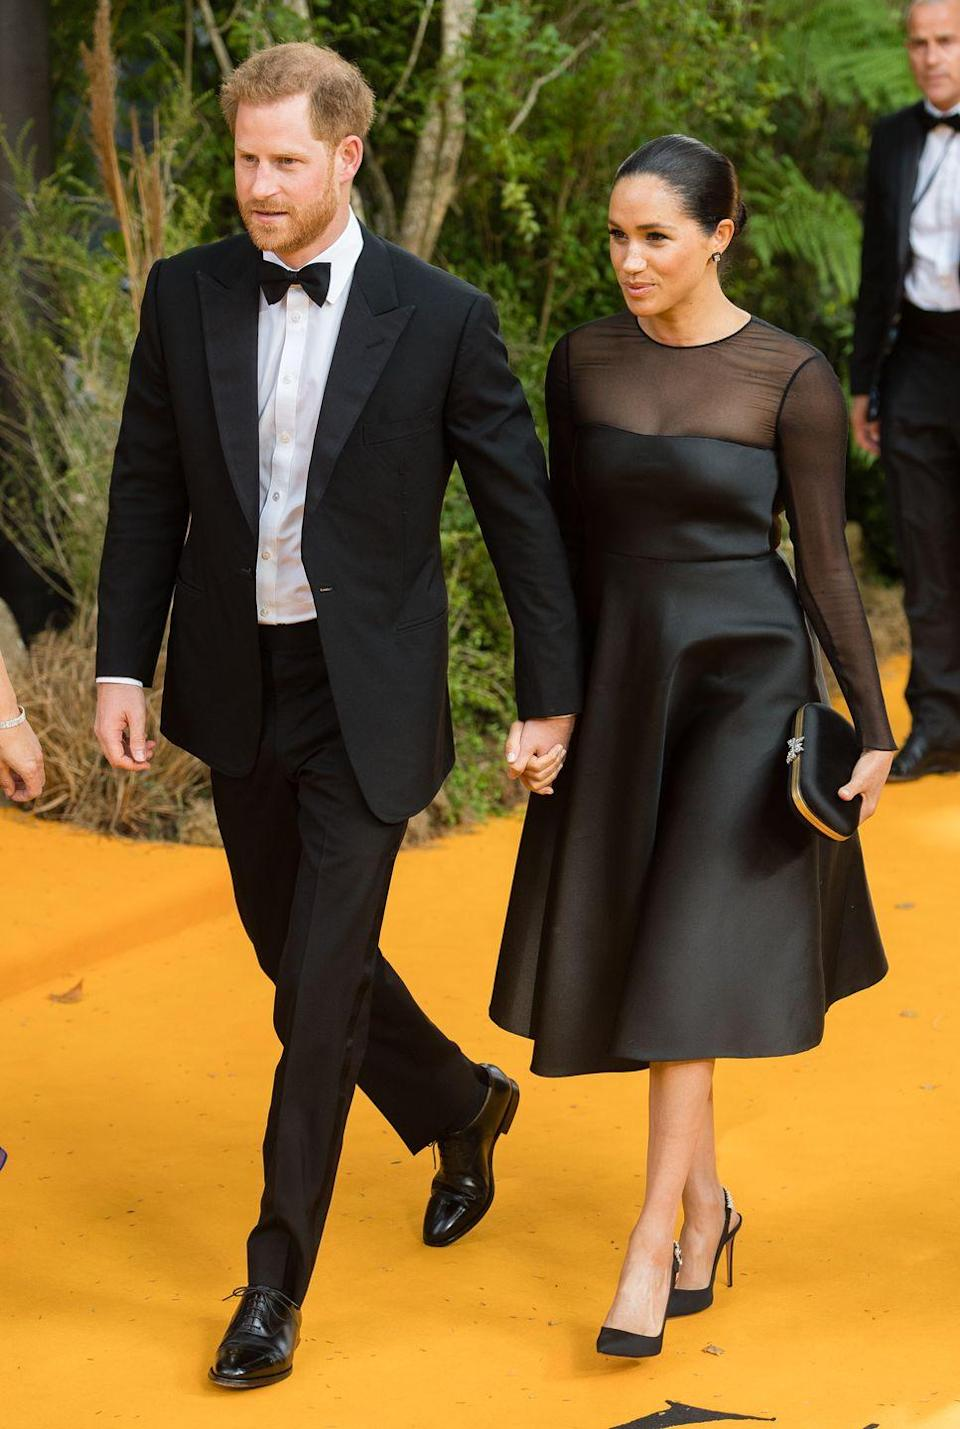 "<p><a href=""https://www.harpersbazaar.com/uk/celebrities/red-carpet/a28389300/duchess-of-sussex-attends-the-lion-king-london-premiere/"" rel=""nofollow noopener"" target=""_blank"" data-ylk=""slk:The royals walked the red carpet together"" class=""link rapid-noclick-resp"">The royals walked the red carpet together</a> at the London premiere of The Lion King, where they met with Beyoncé & Jay-Z, as well as Elton John. Meghan, in her first red-carpet appearance after giving birth, wore a black Jason Wu dress with timeless Aquazzura slingback pumps, while Harry was dapper in a tux and bow-tie. </p>"